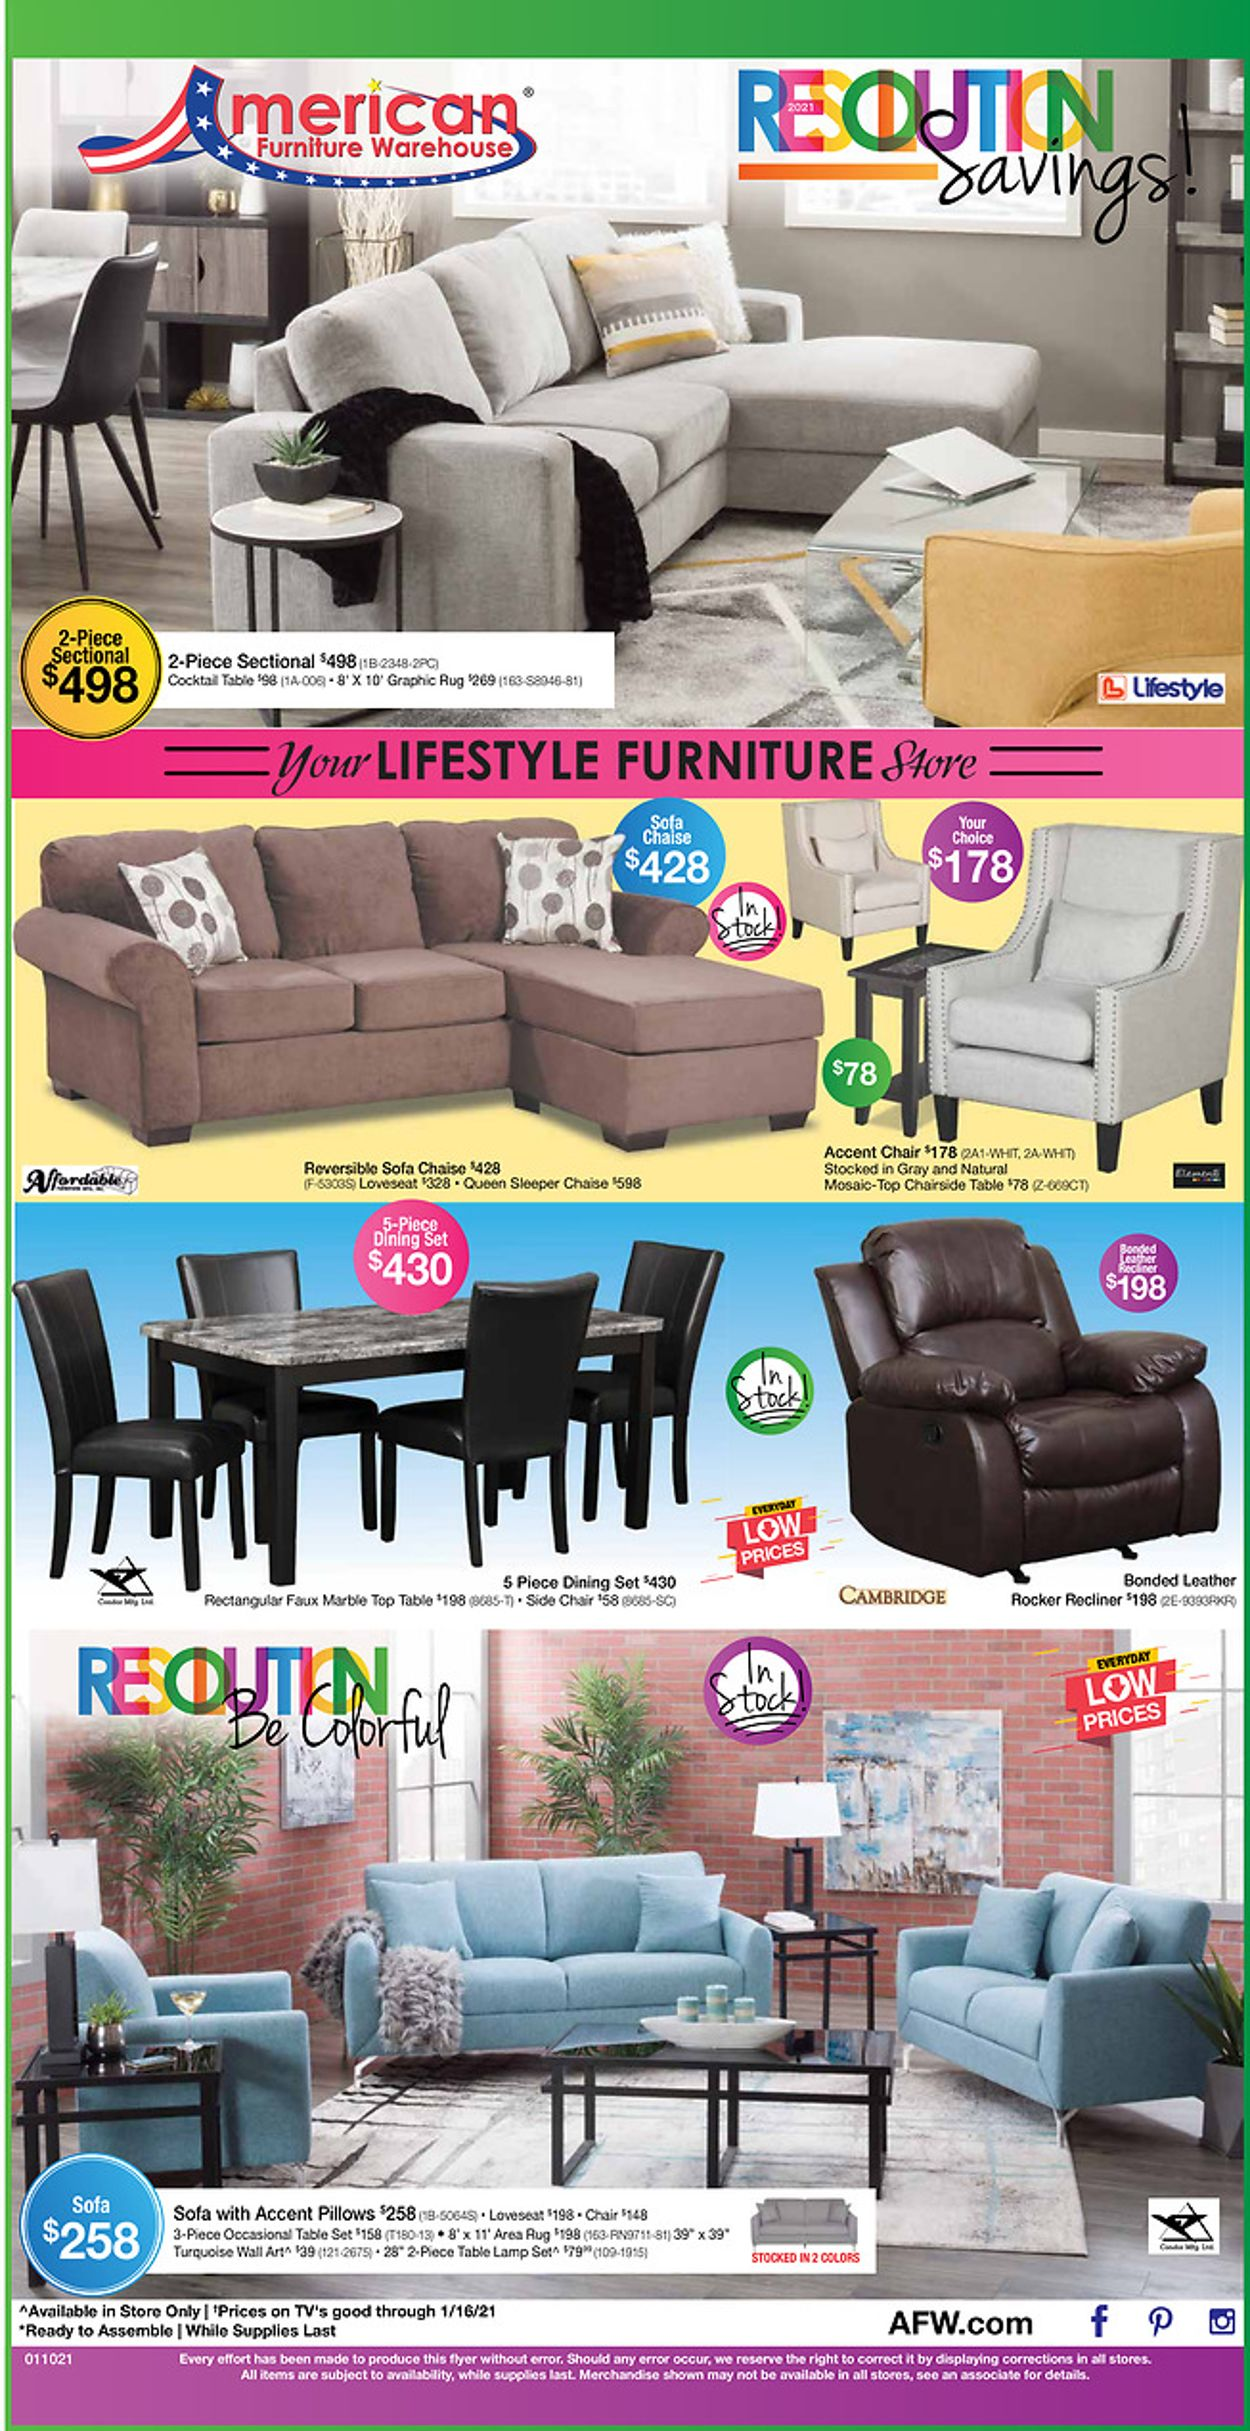 American Furniture Warehouse Resolution Savings Event 2021 Current Weekly Ad 01 05 01 16 2021 Frequent Ads Com